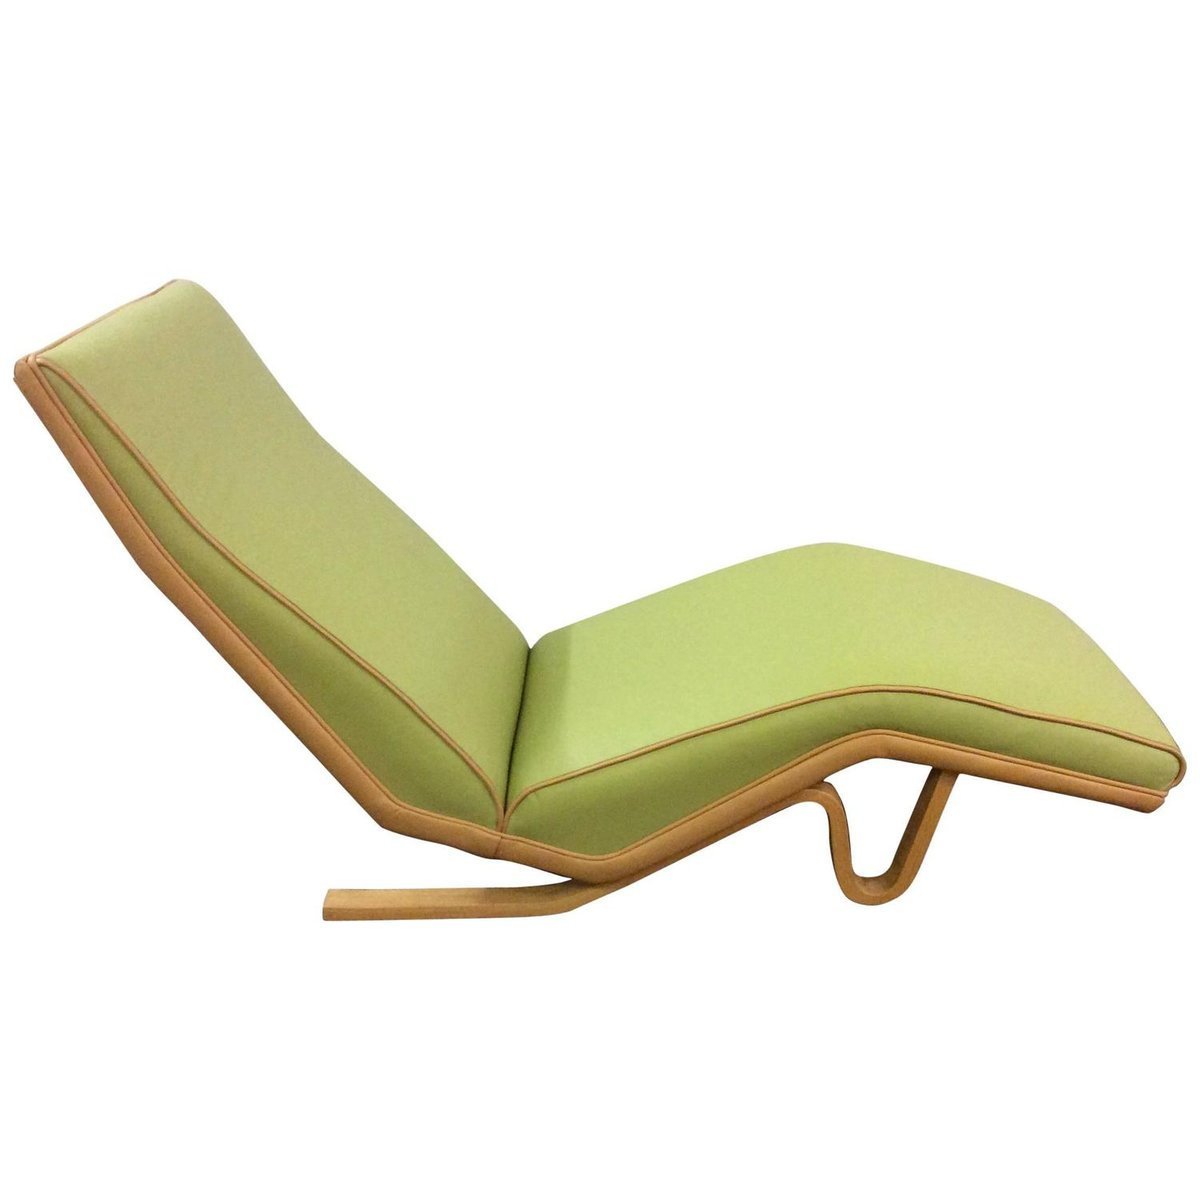 British chaise lounge by andrew j milne 1950s for sale for 1950s chaise lounge